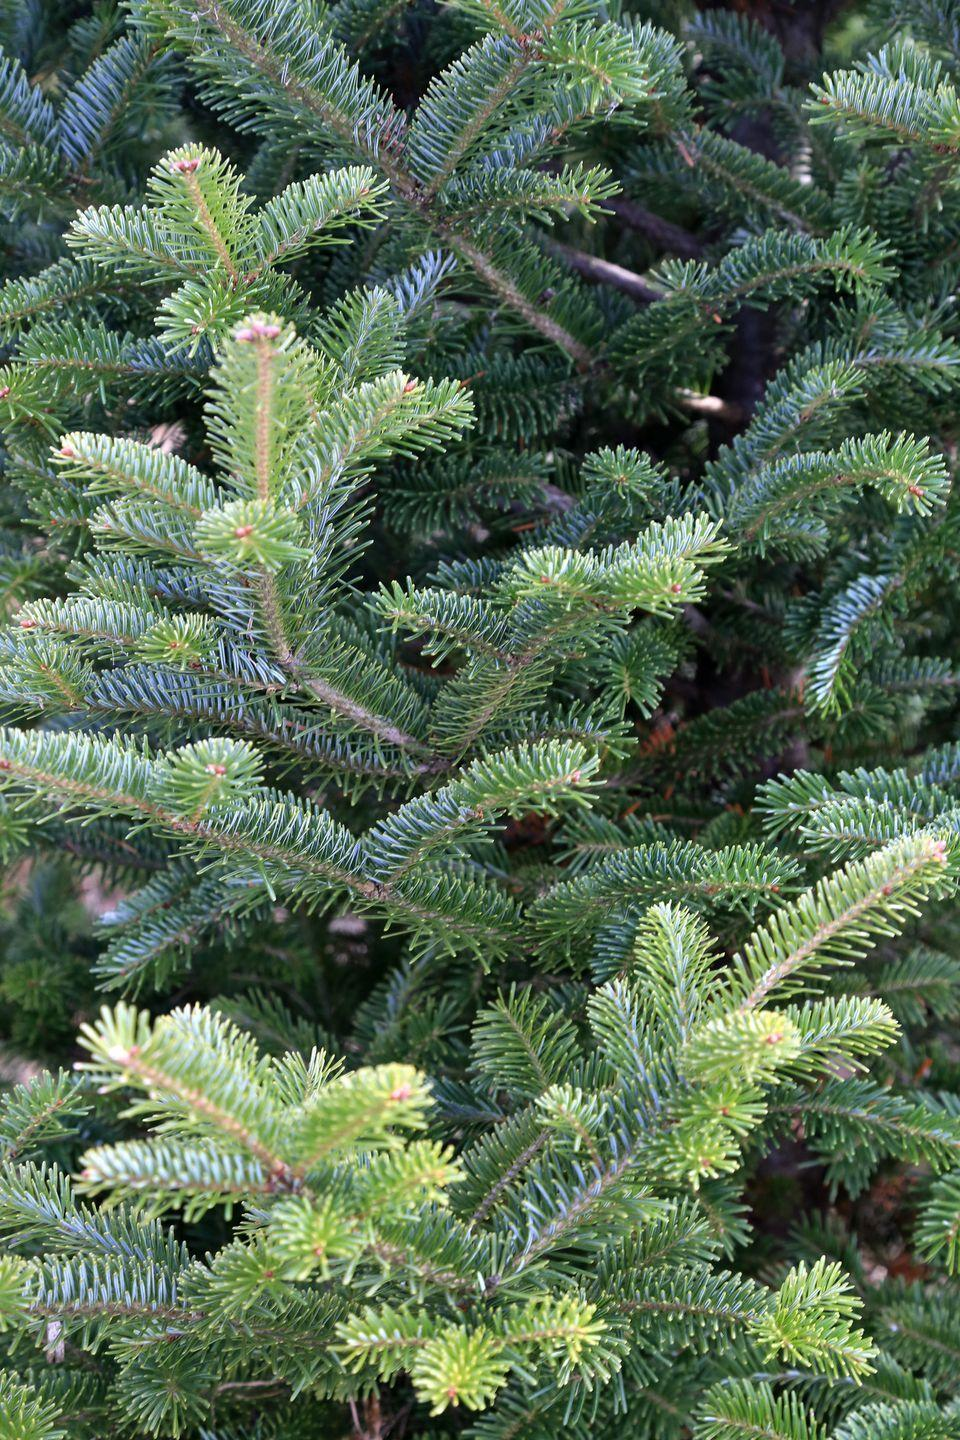 "<p>Canaan Firs are often described as being very <a href=""https://www.canr.msu.edu/news/choosing_the_right_christmas_tree#canaan"" rel=""nofollow noopener"" target=""_blank"" data-ylk=""slk:similar to the Balsam Fir"" class=""link rapid-noclick-resp"">similar to the Balsam Fir</a>, MSU reports, but with the added needle retention of the Fraser Fir. ""It is a relative 'new kid on the block' in comparison to other Christmas tree species,"" Radin says. ""<strong>It has a dense pyramidal shape like Fraser and balsam fir,</strong> and its needles tend to curve upward.""</p>"